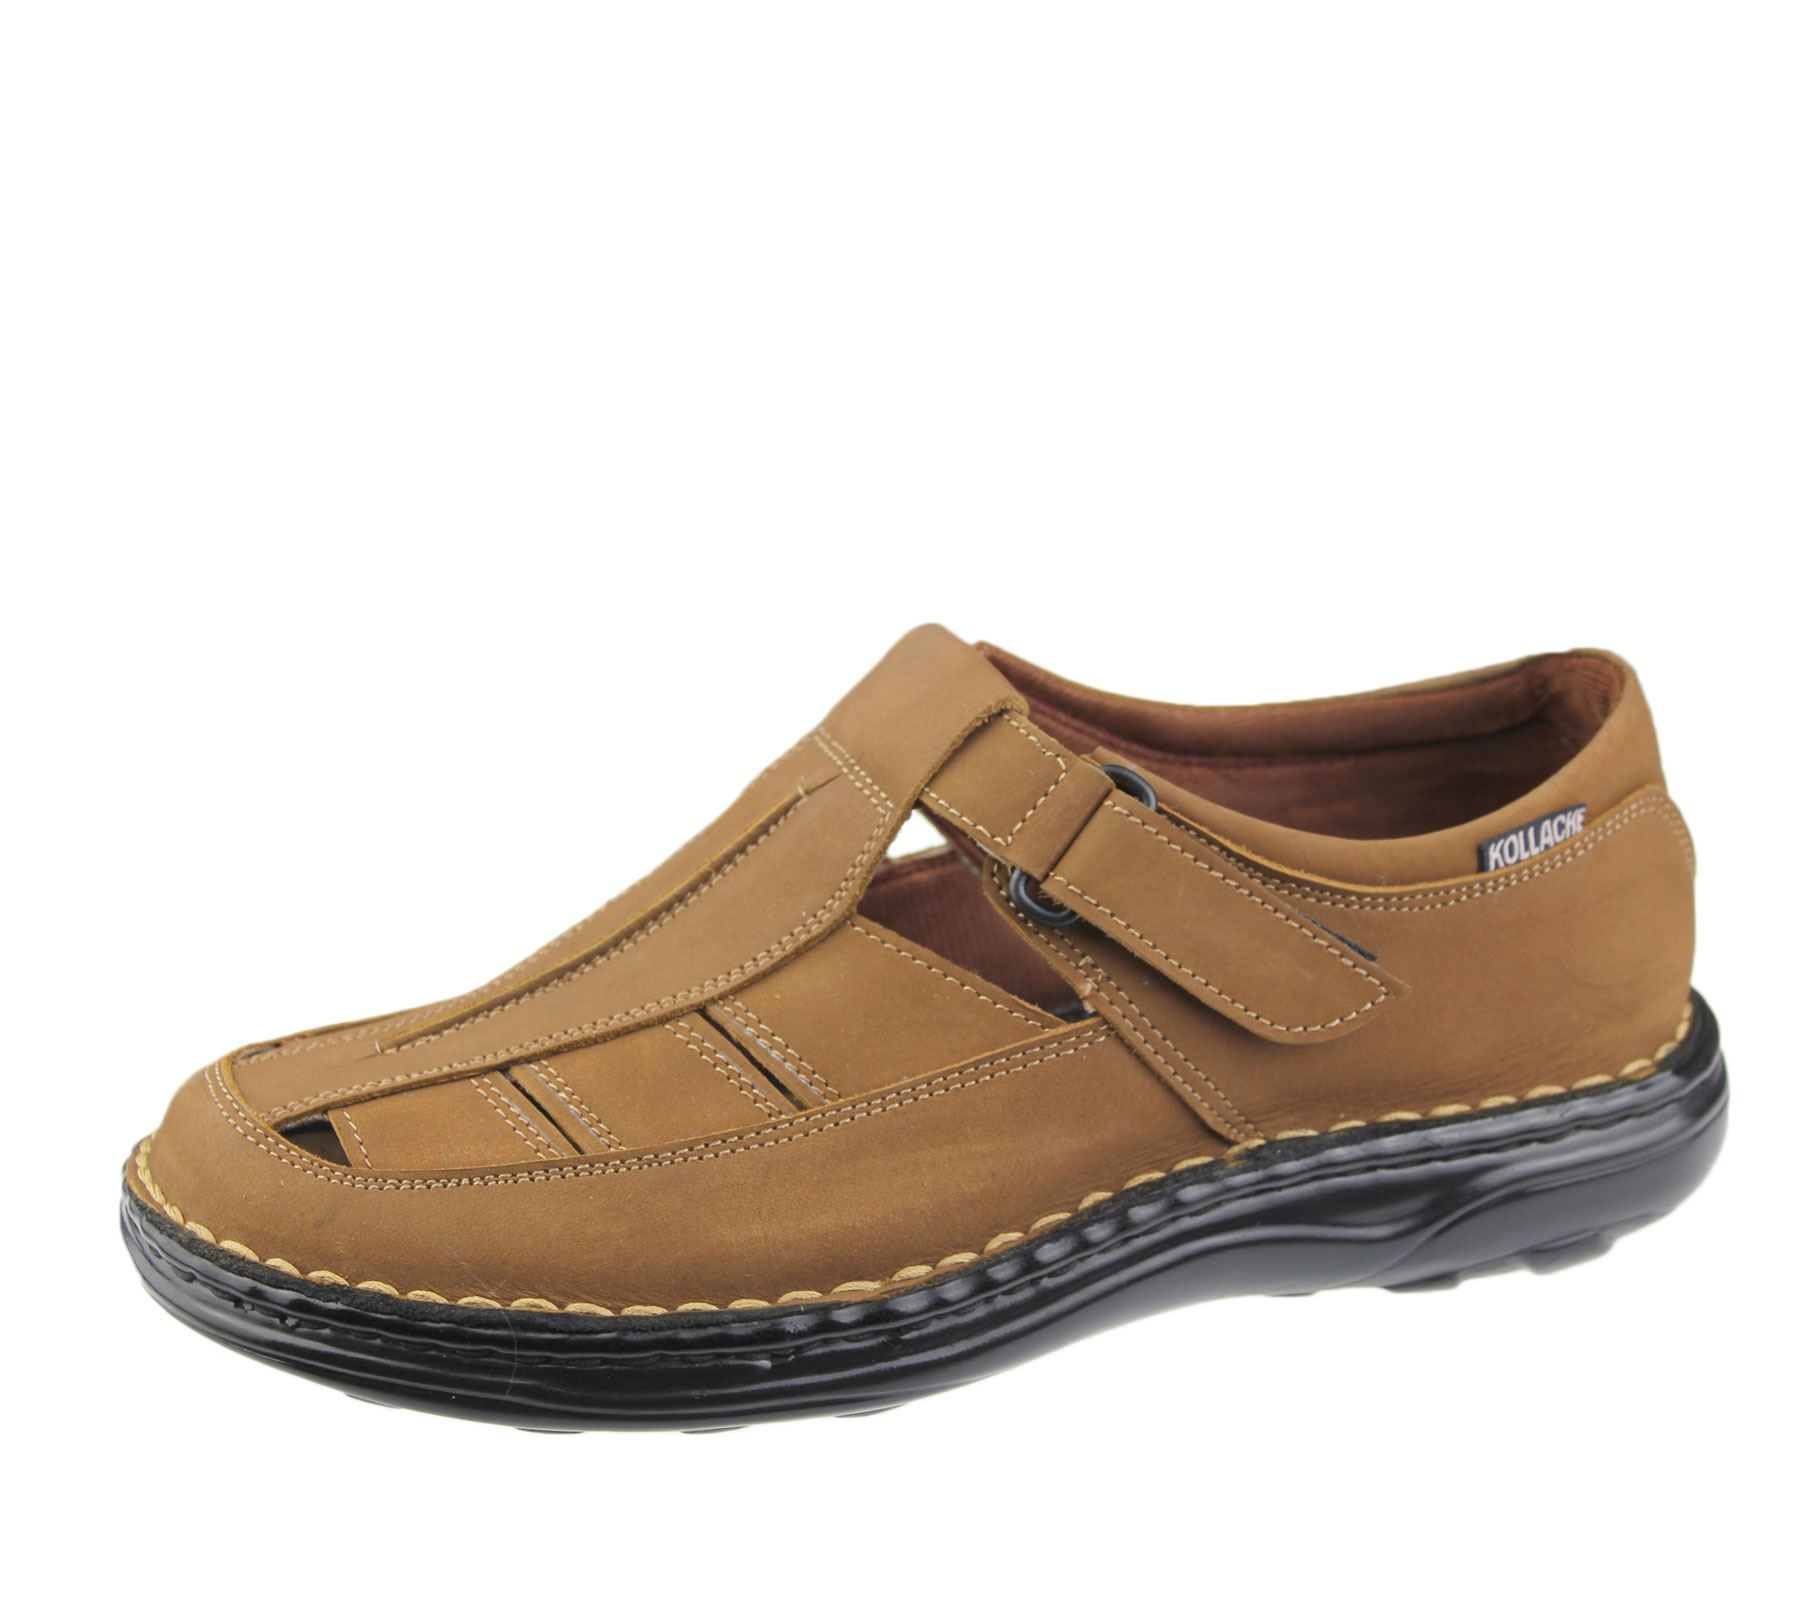 mens wide fit sandals casual fashion casual walking